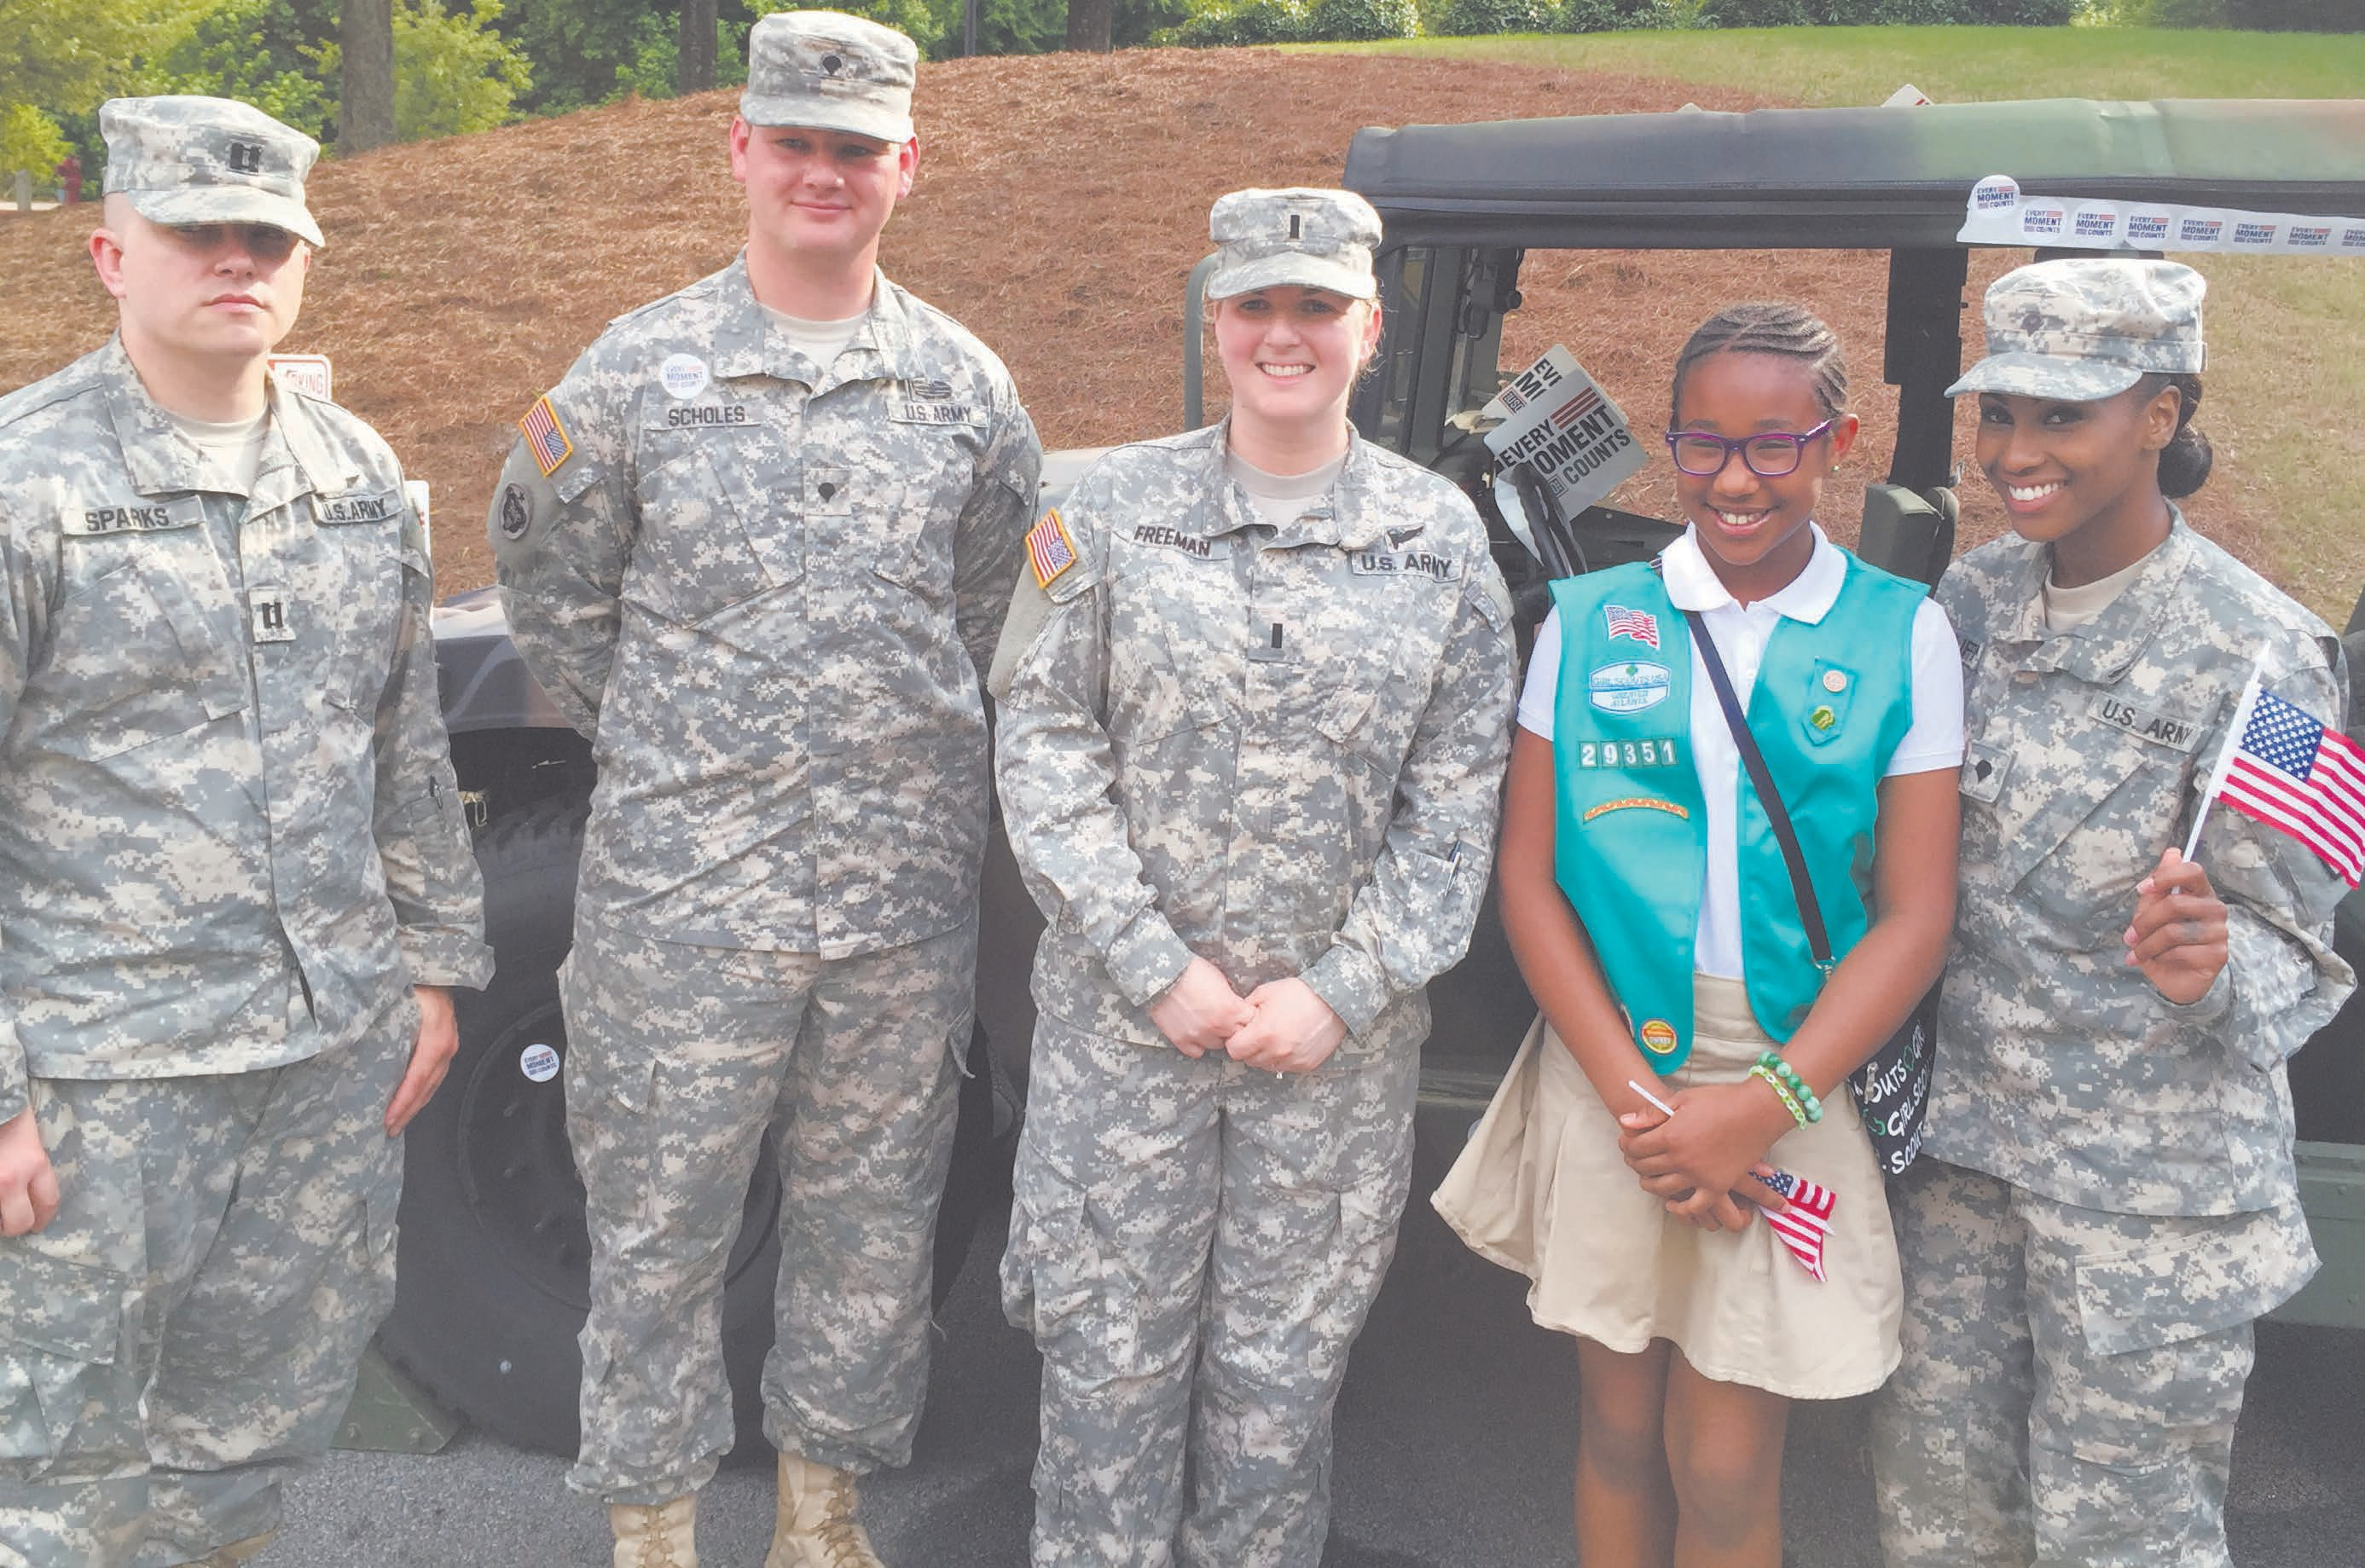 Girl Scout Lauren James is pictured with members of the active military. Lauren is the daughter of Attorneys Robert, II and Angela James, and the granddaughter of Robert and Shirley James of Savannah. Lauren would like to thank her many friends, including those in the Savannah area, who supported the Smiles 4 Military Sendoff Program and her sales of Girl Scout Cookies.